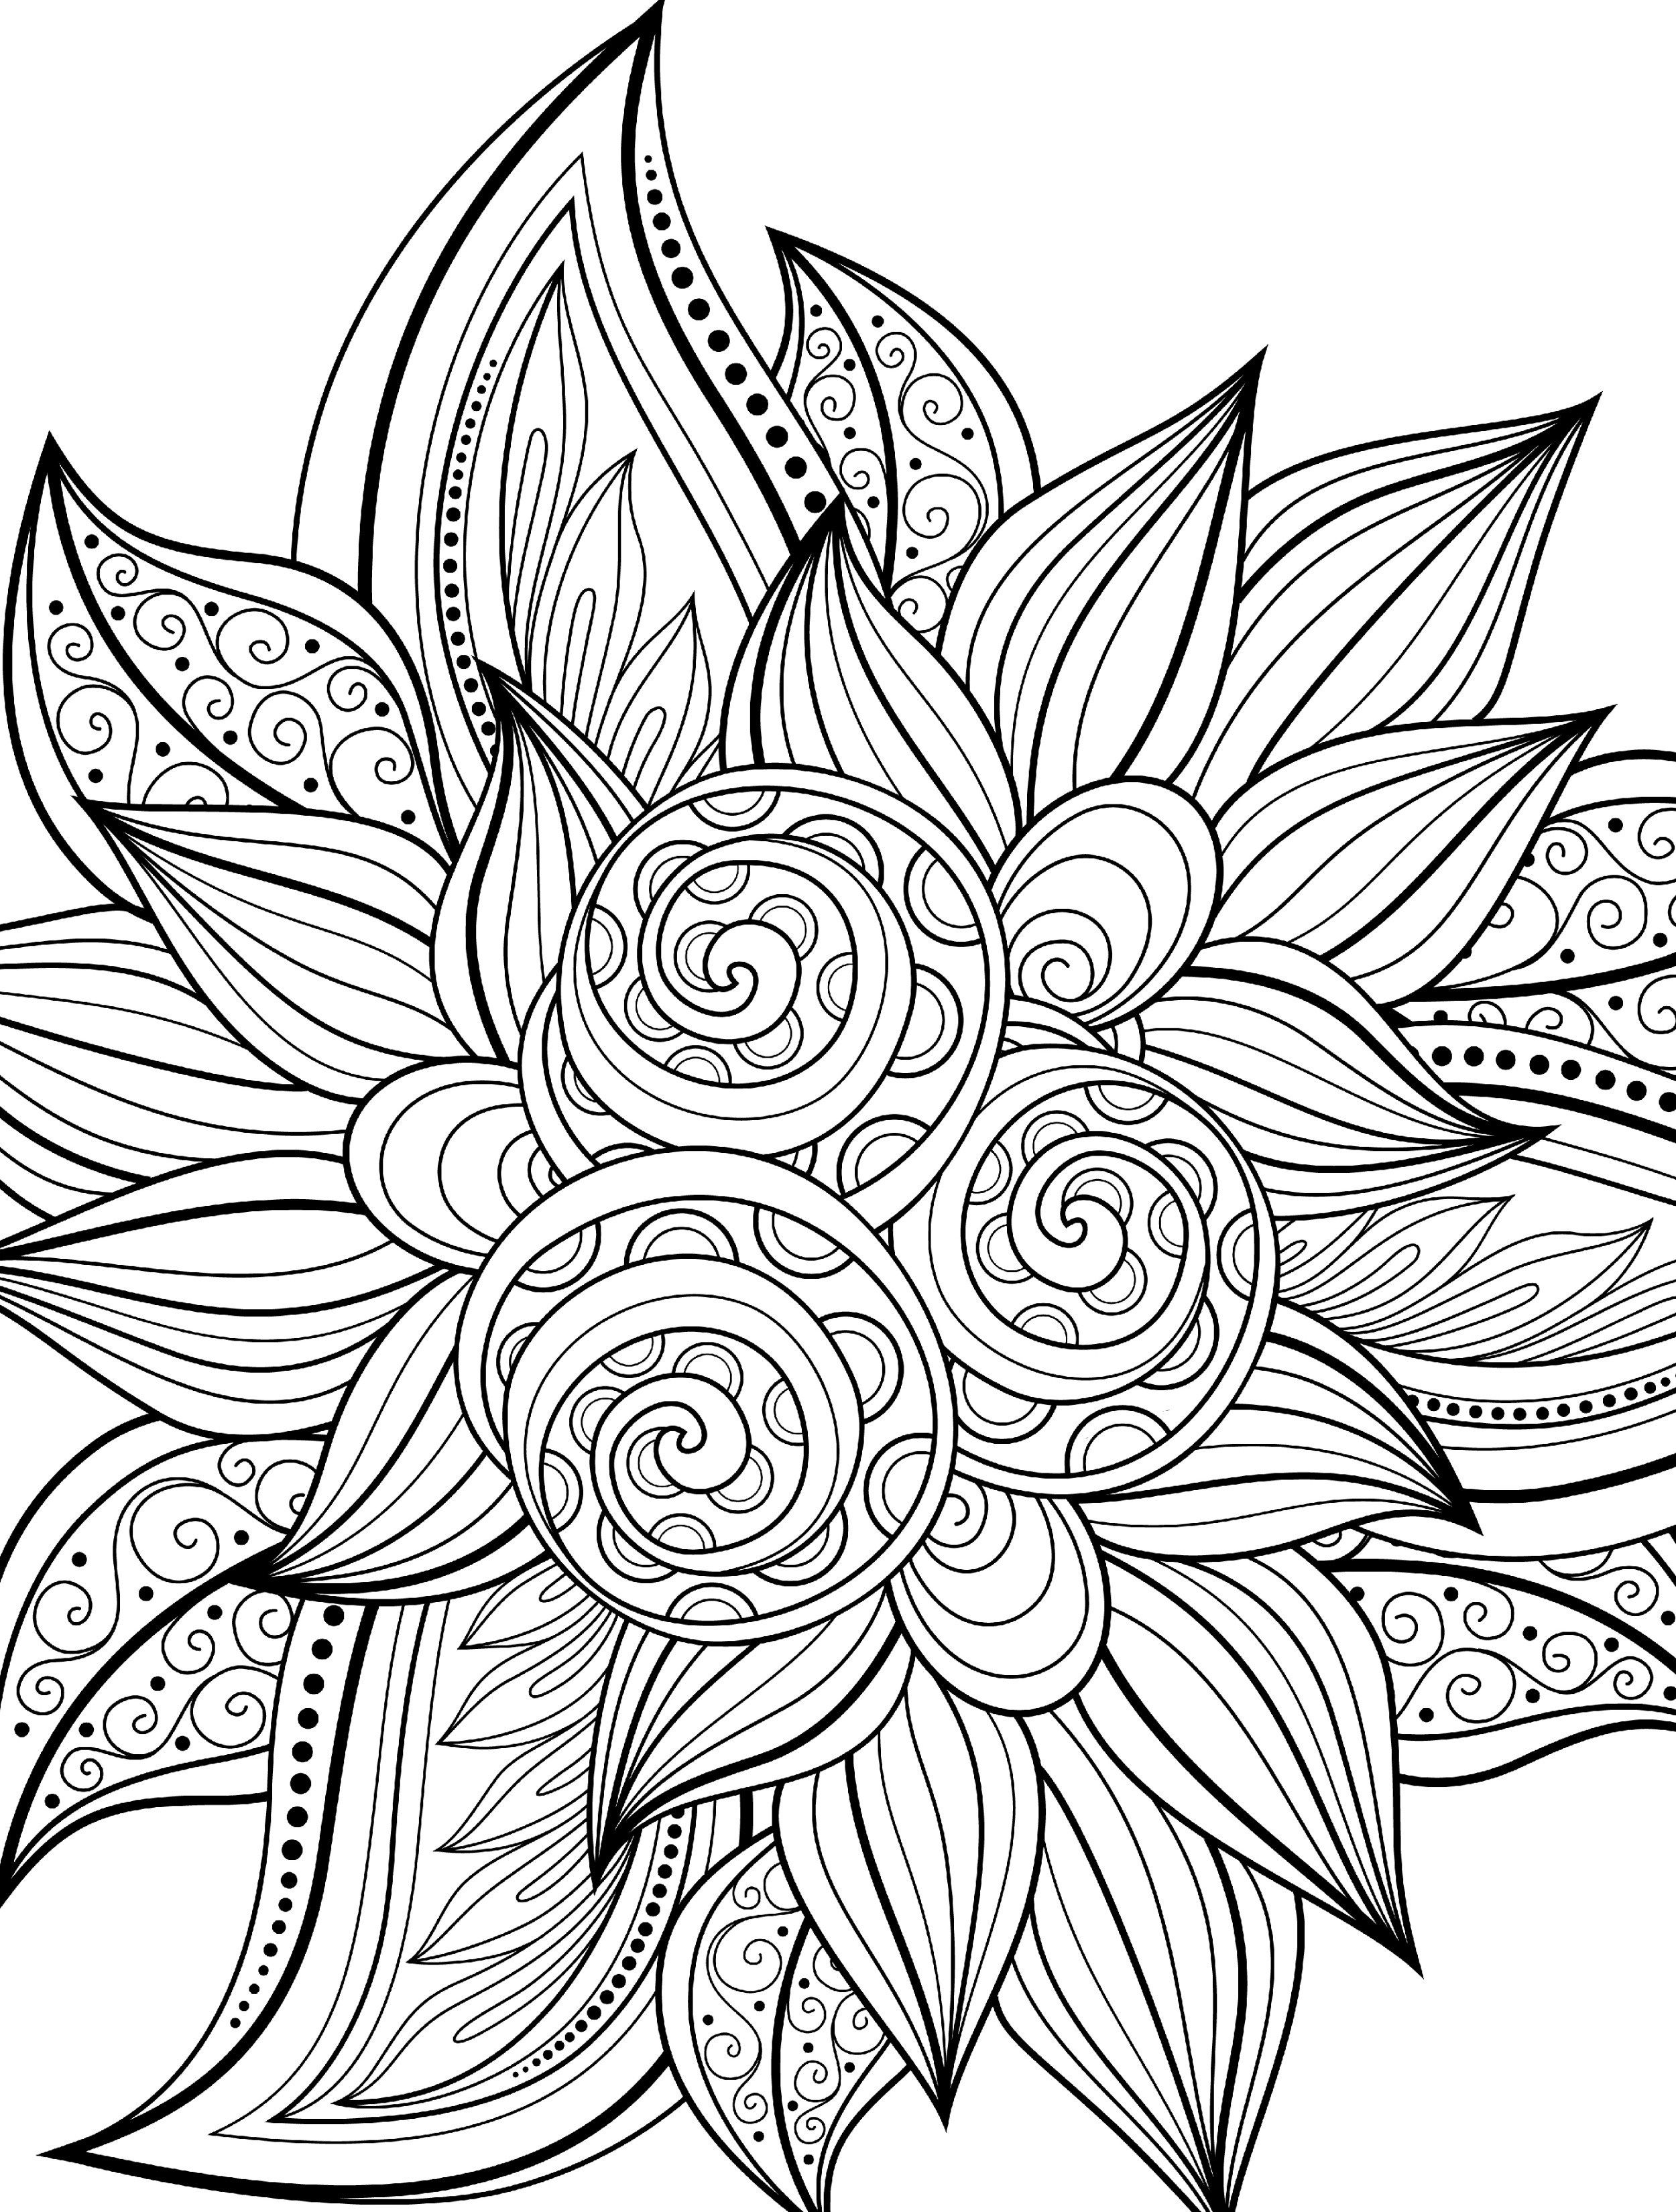 small coloring pages for adults - photo#5